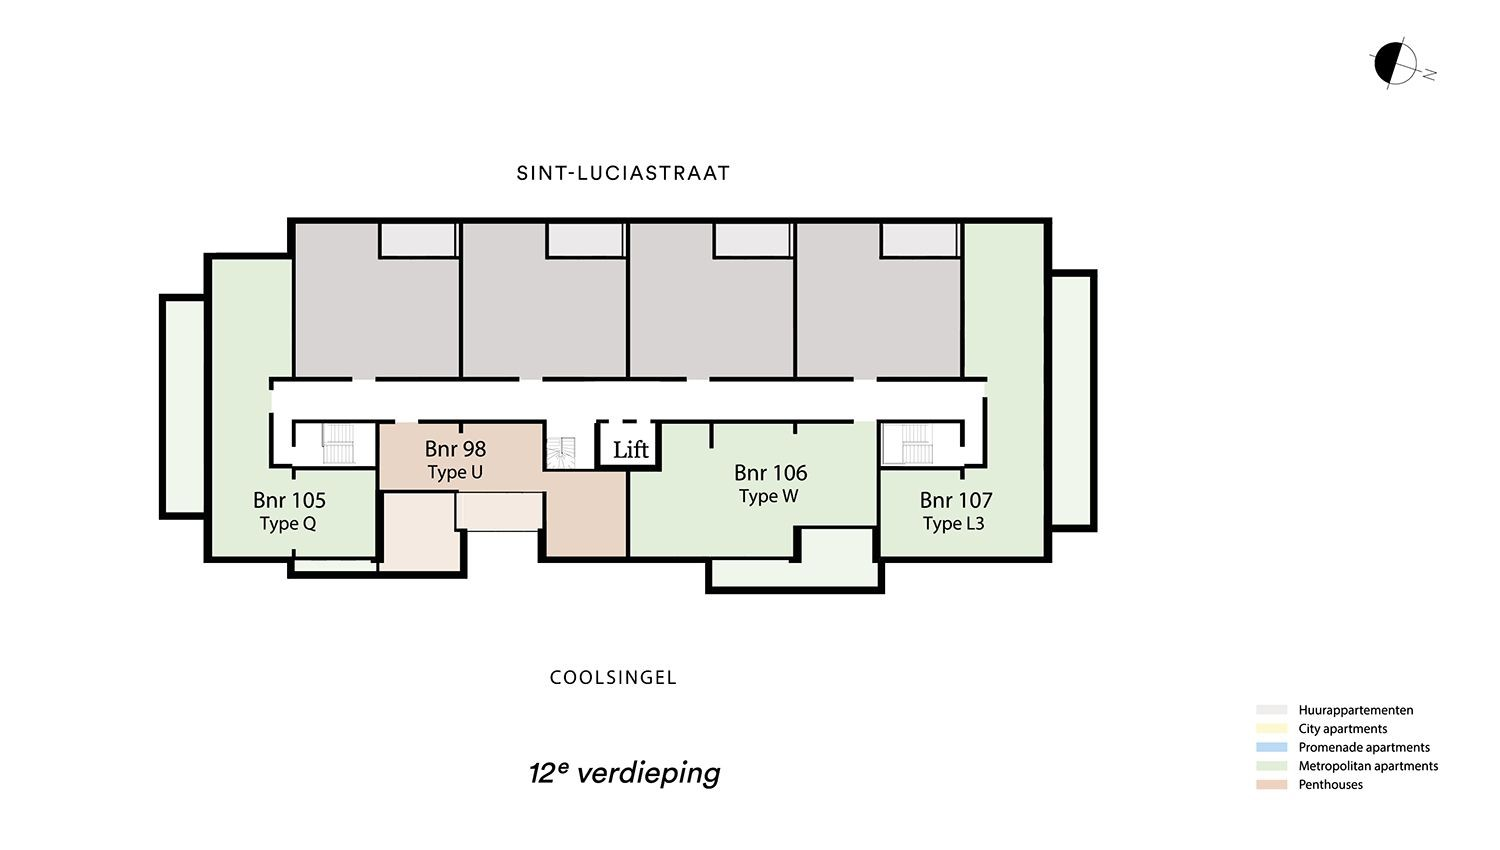 Floor plan verdieping 12 Type L3 - Metropolitan apartment N� 75 coolsingel